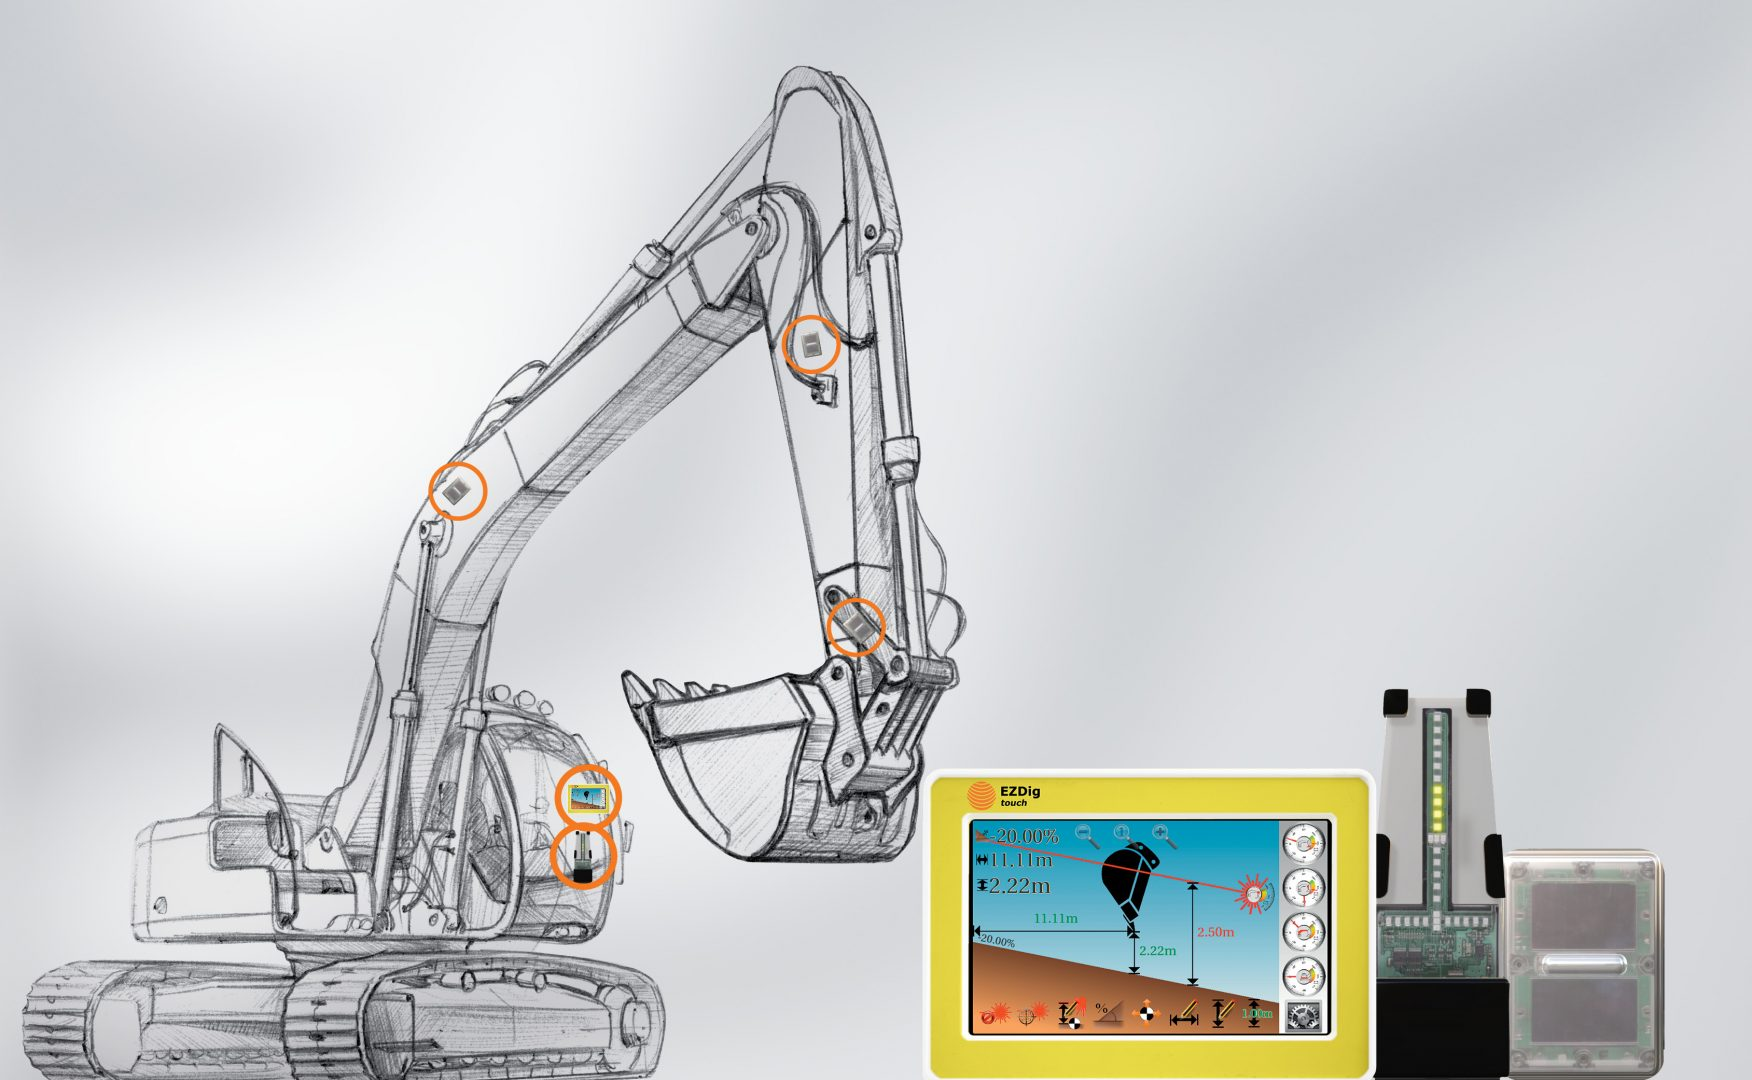 GeoMax EzDig 1D S Excavator Guidance System